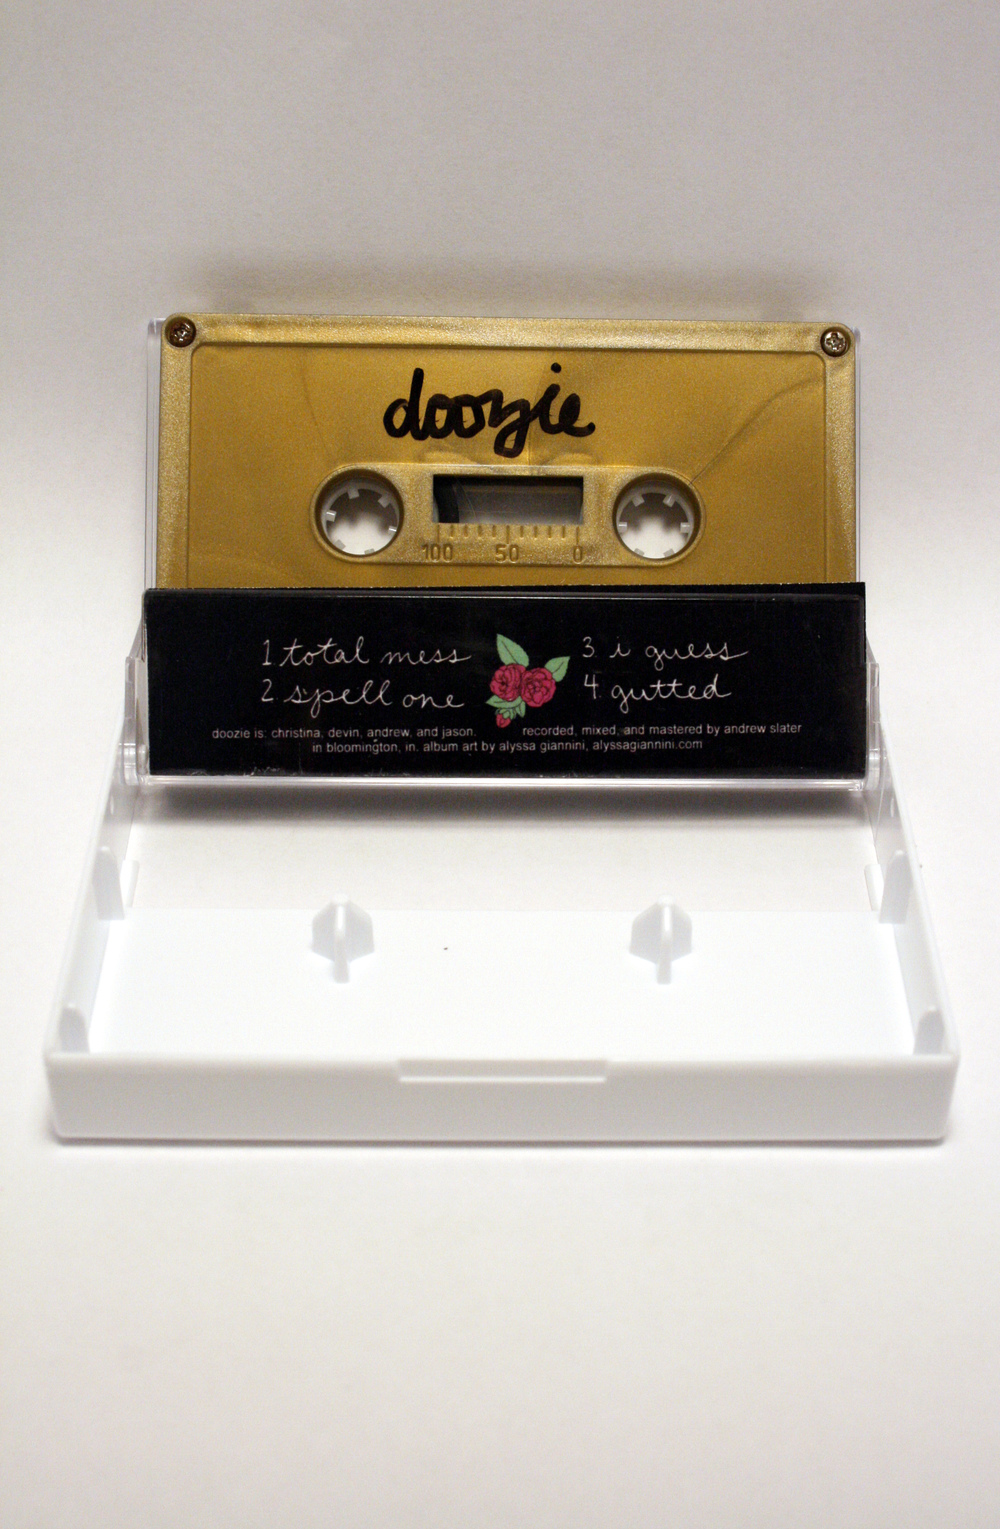 cassette art for doozie